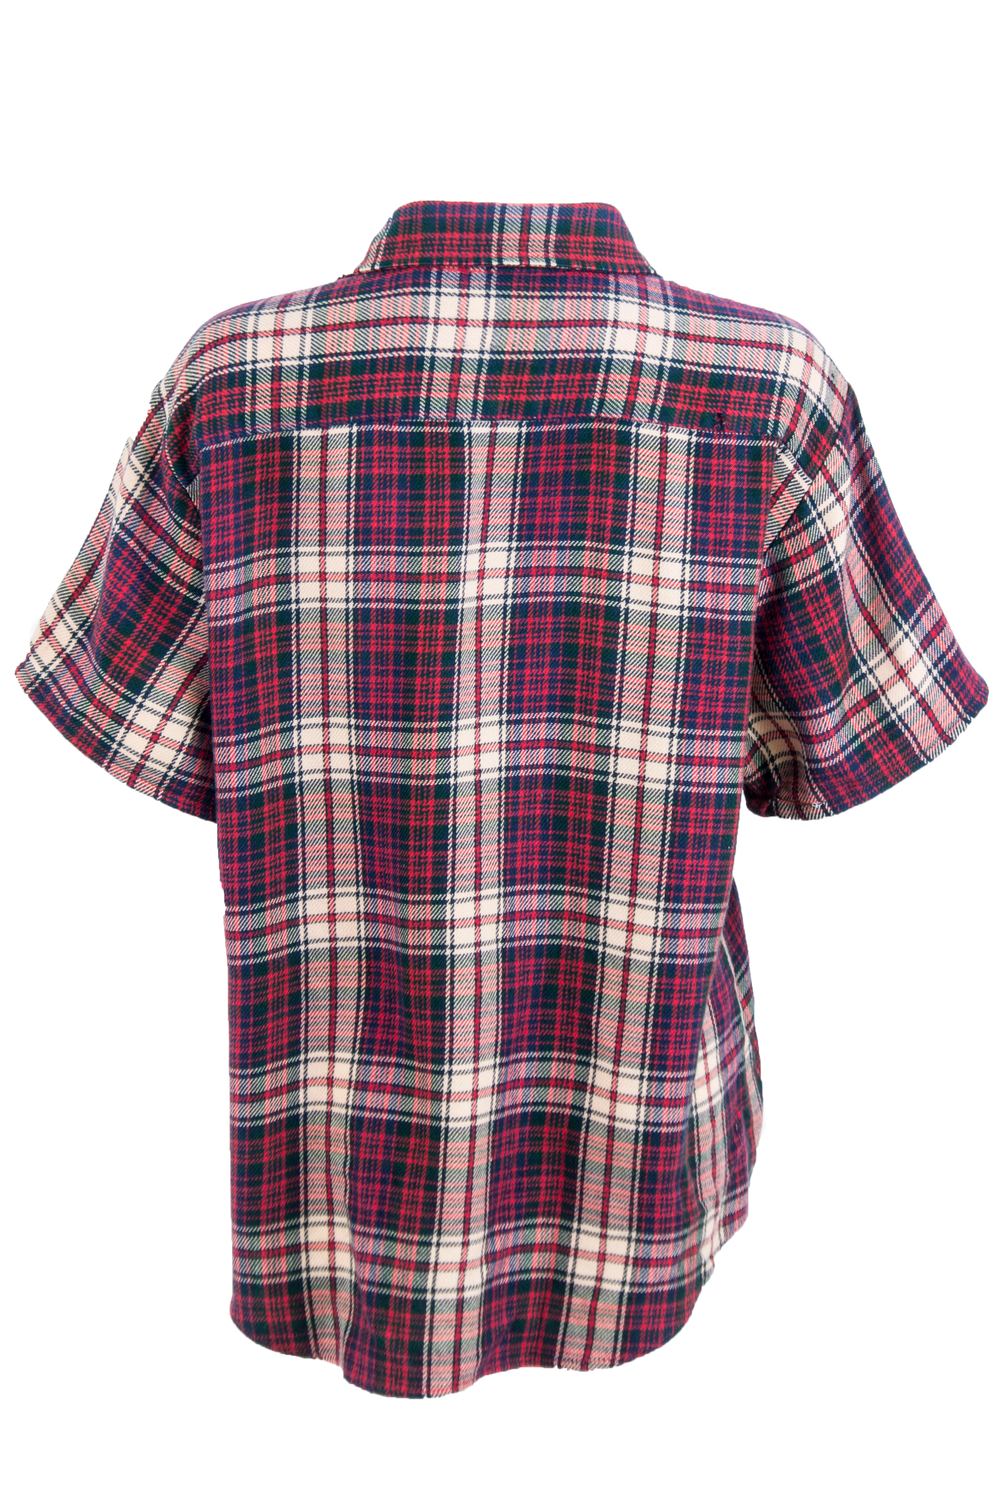 red flannel shirt with short sleeves